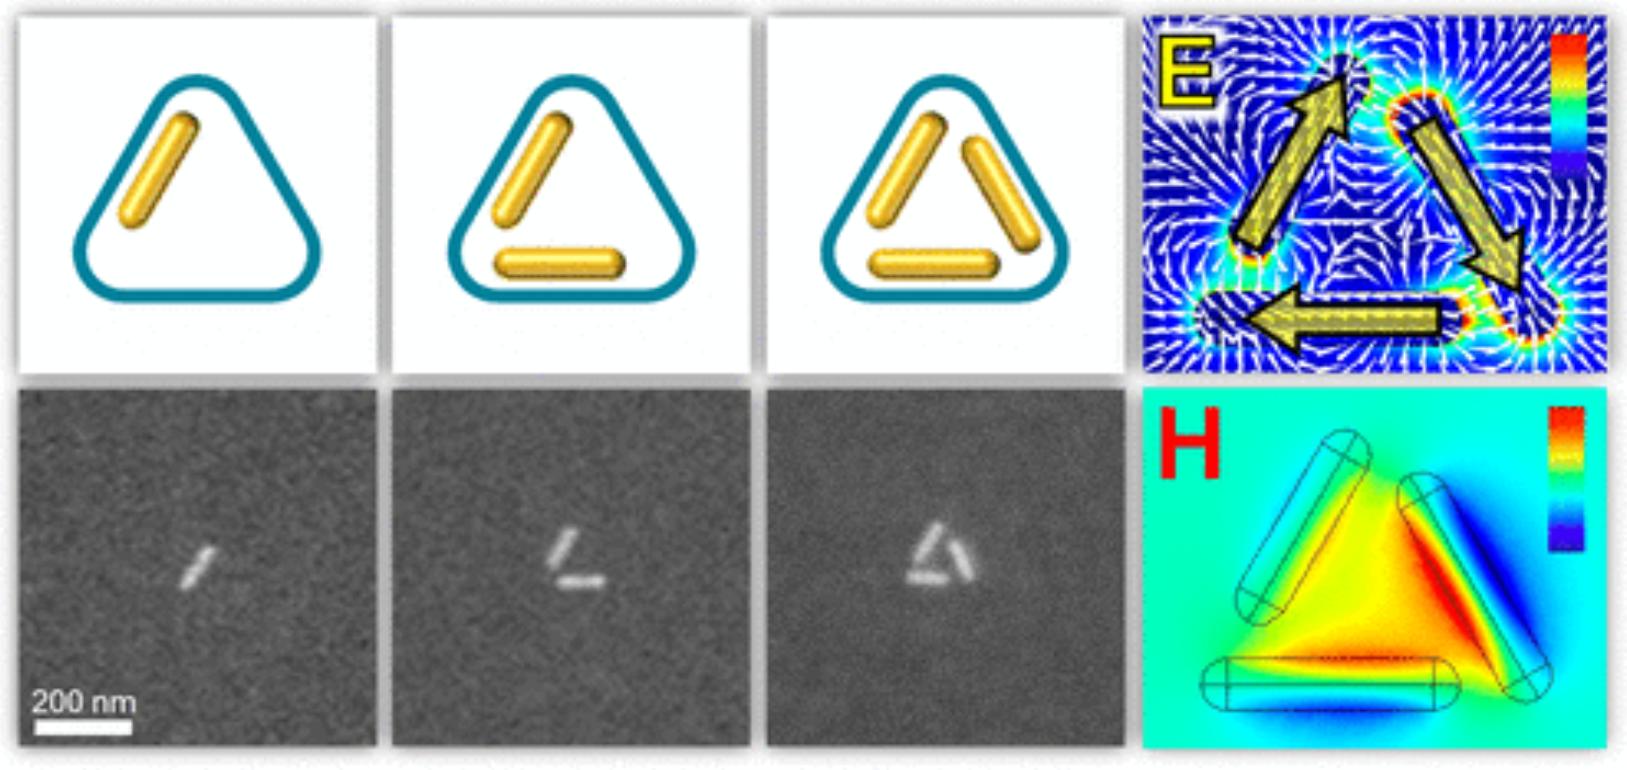 Plasmonic Optical and Chiroptical Response of Self-Assembled Au Nanorod Equilateral Trimers